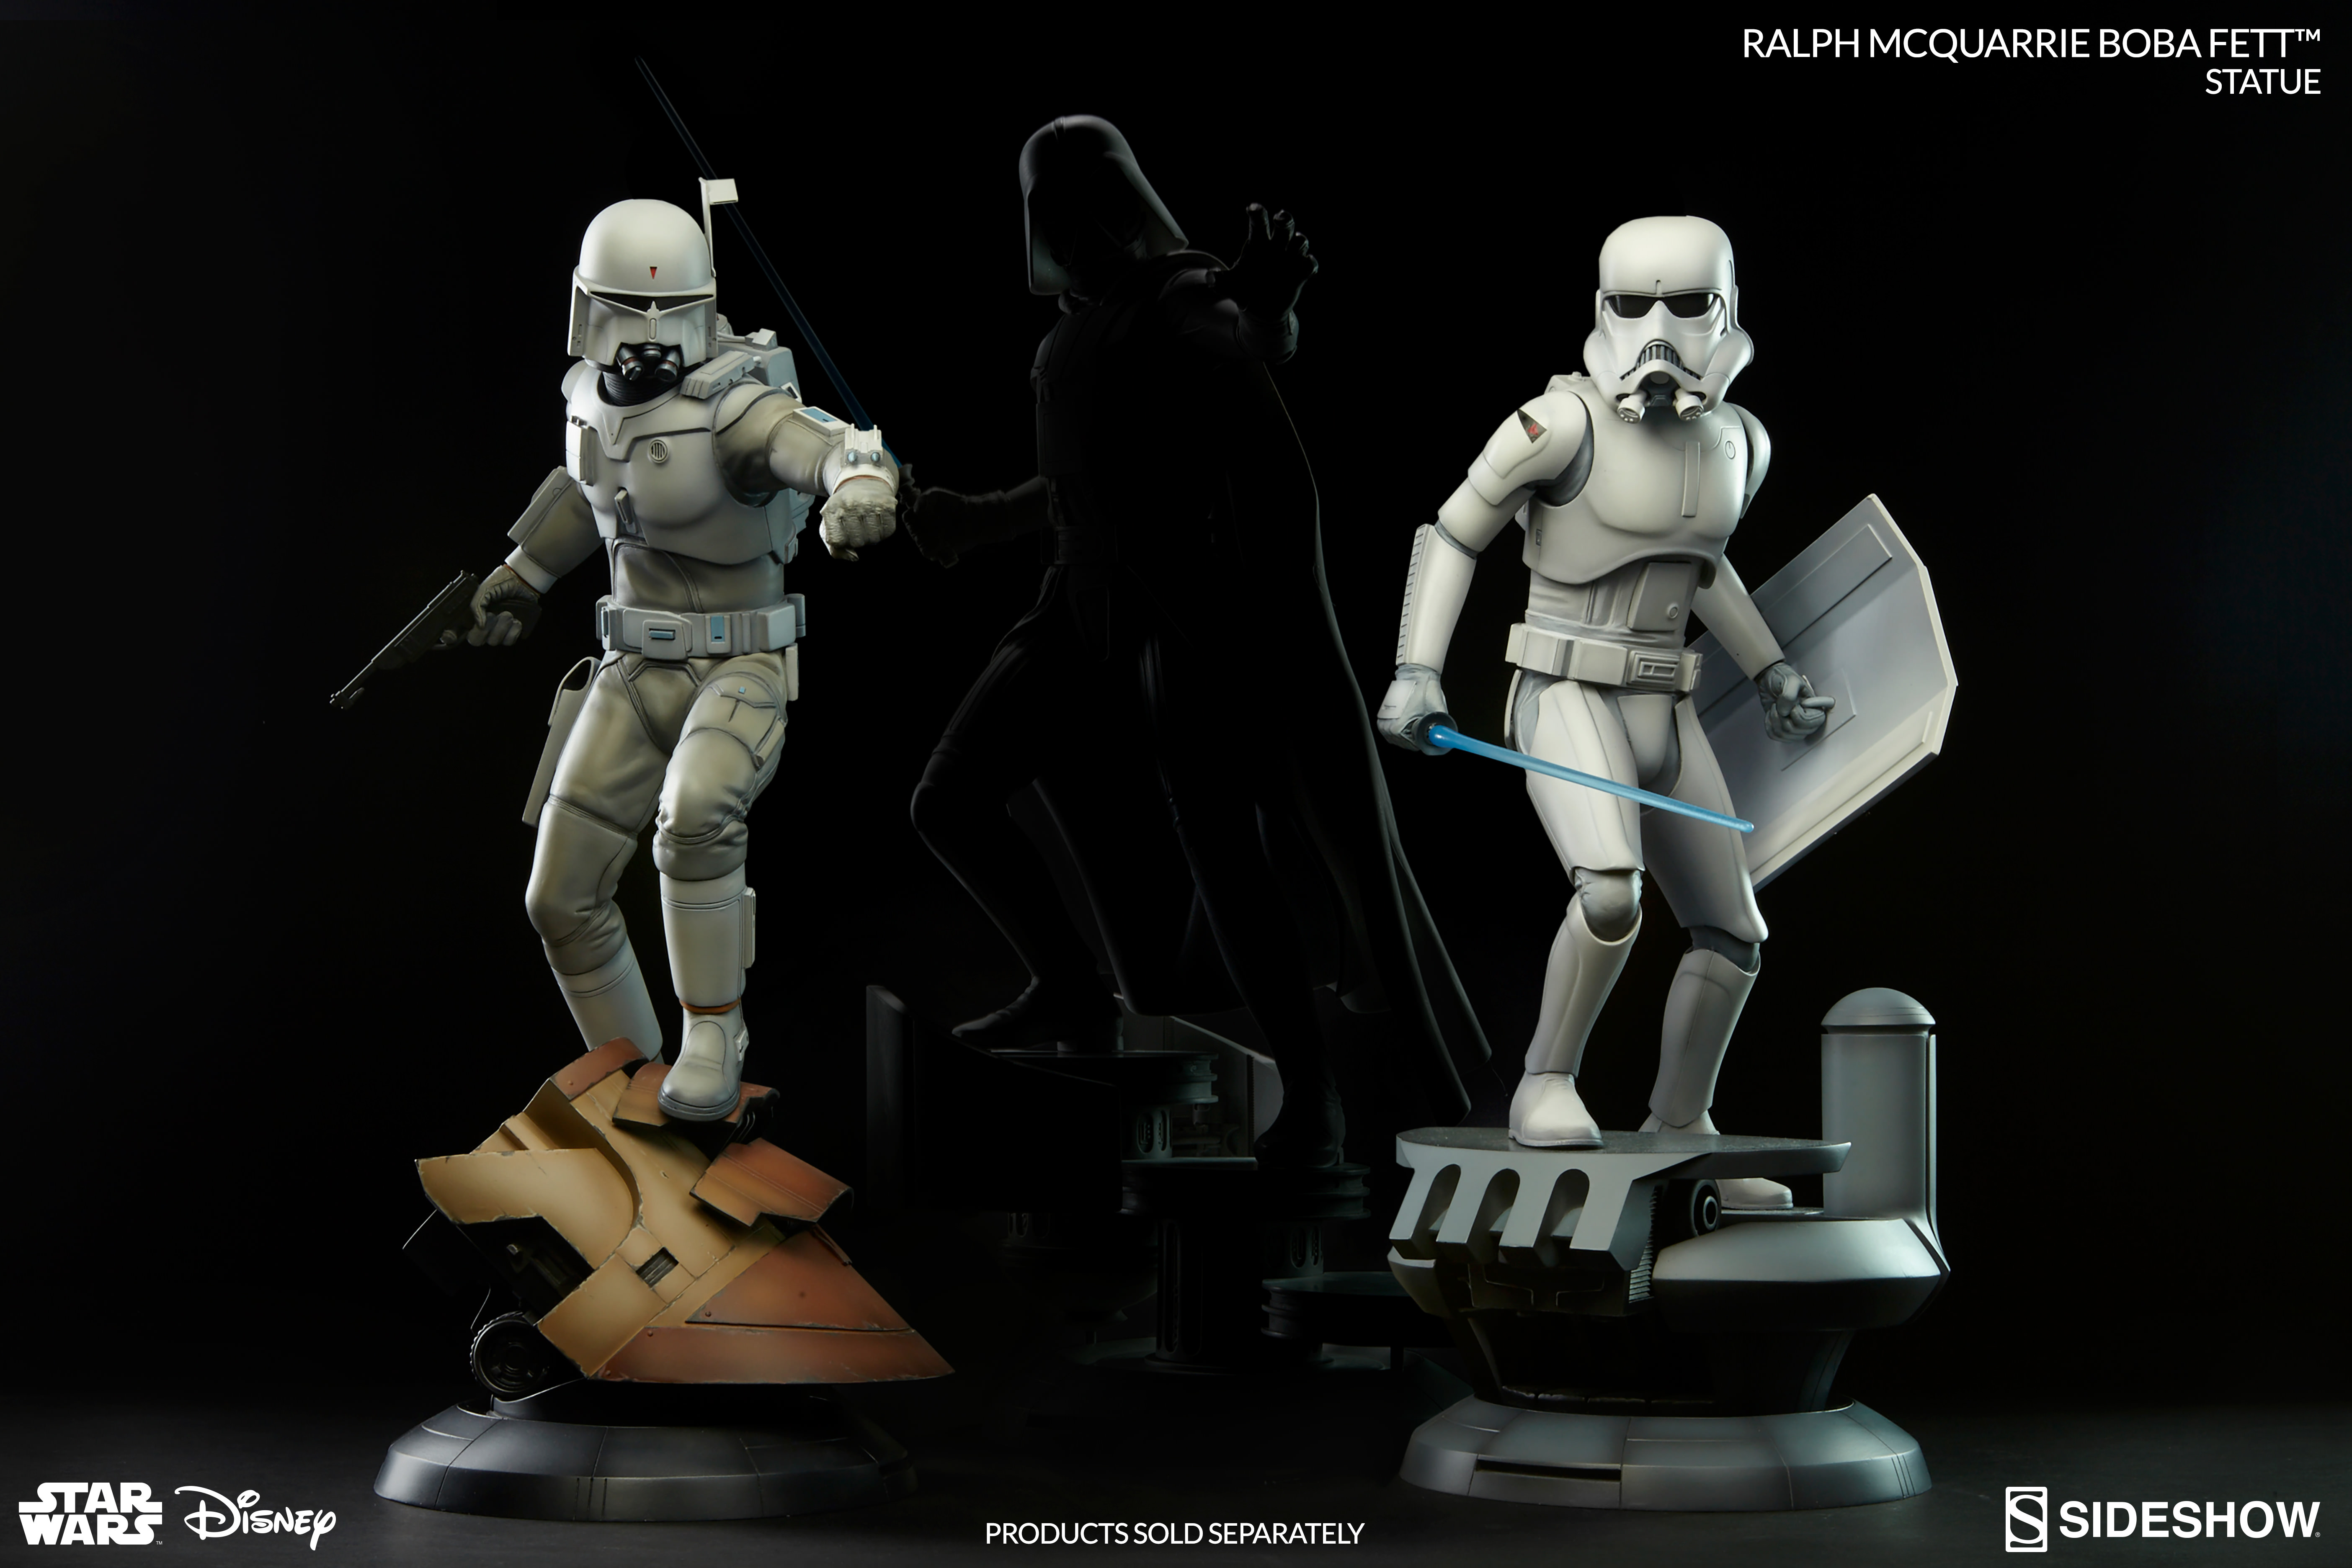 Sideshow Debuts The Ralph Mcquarrie Boba Fett Statue Graphic Policy